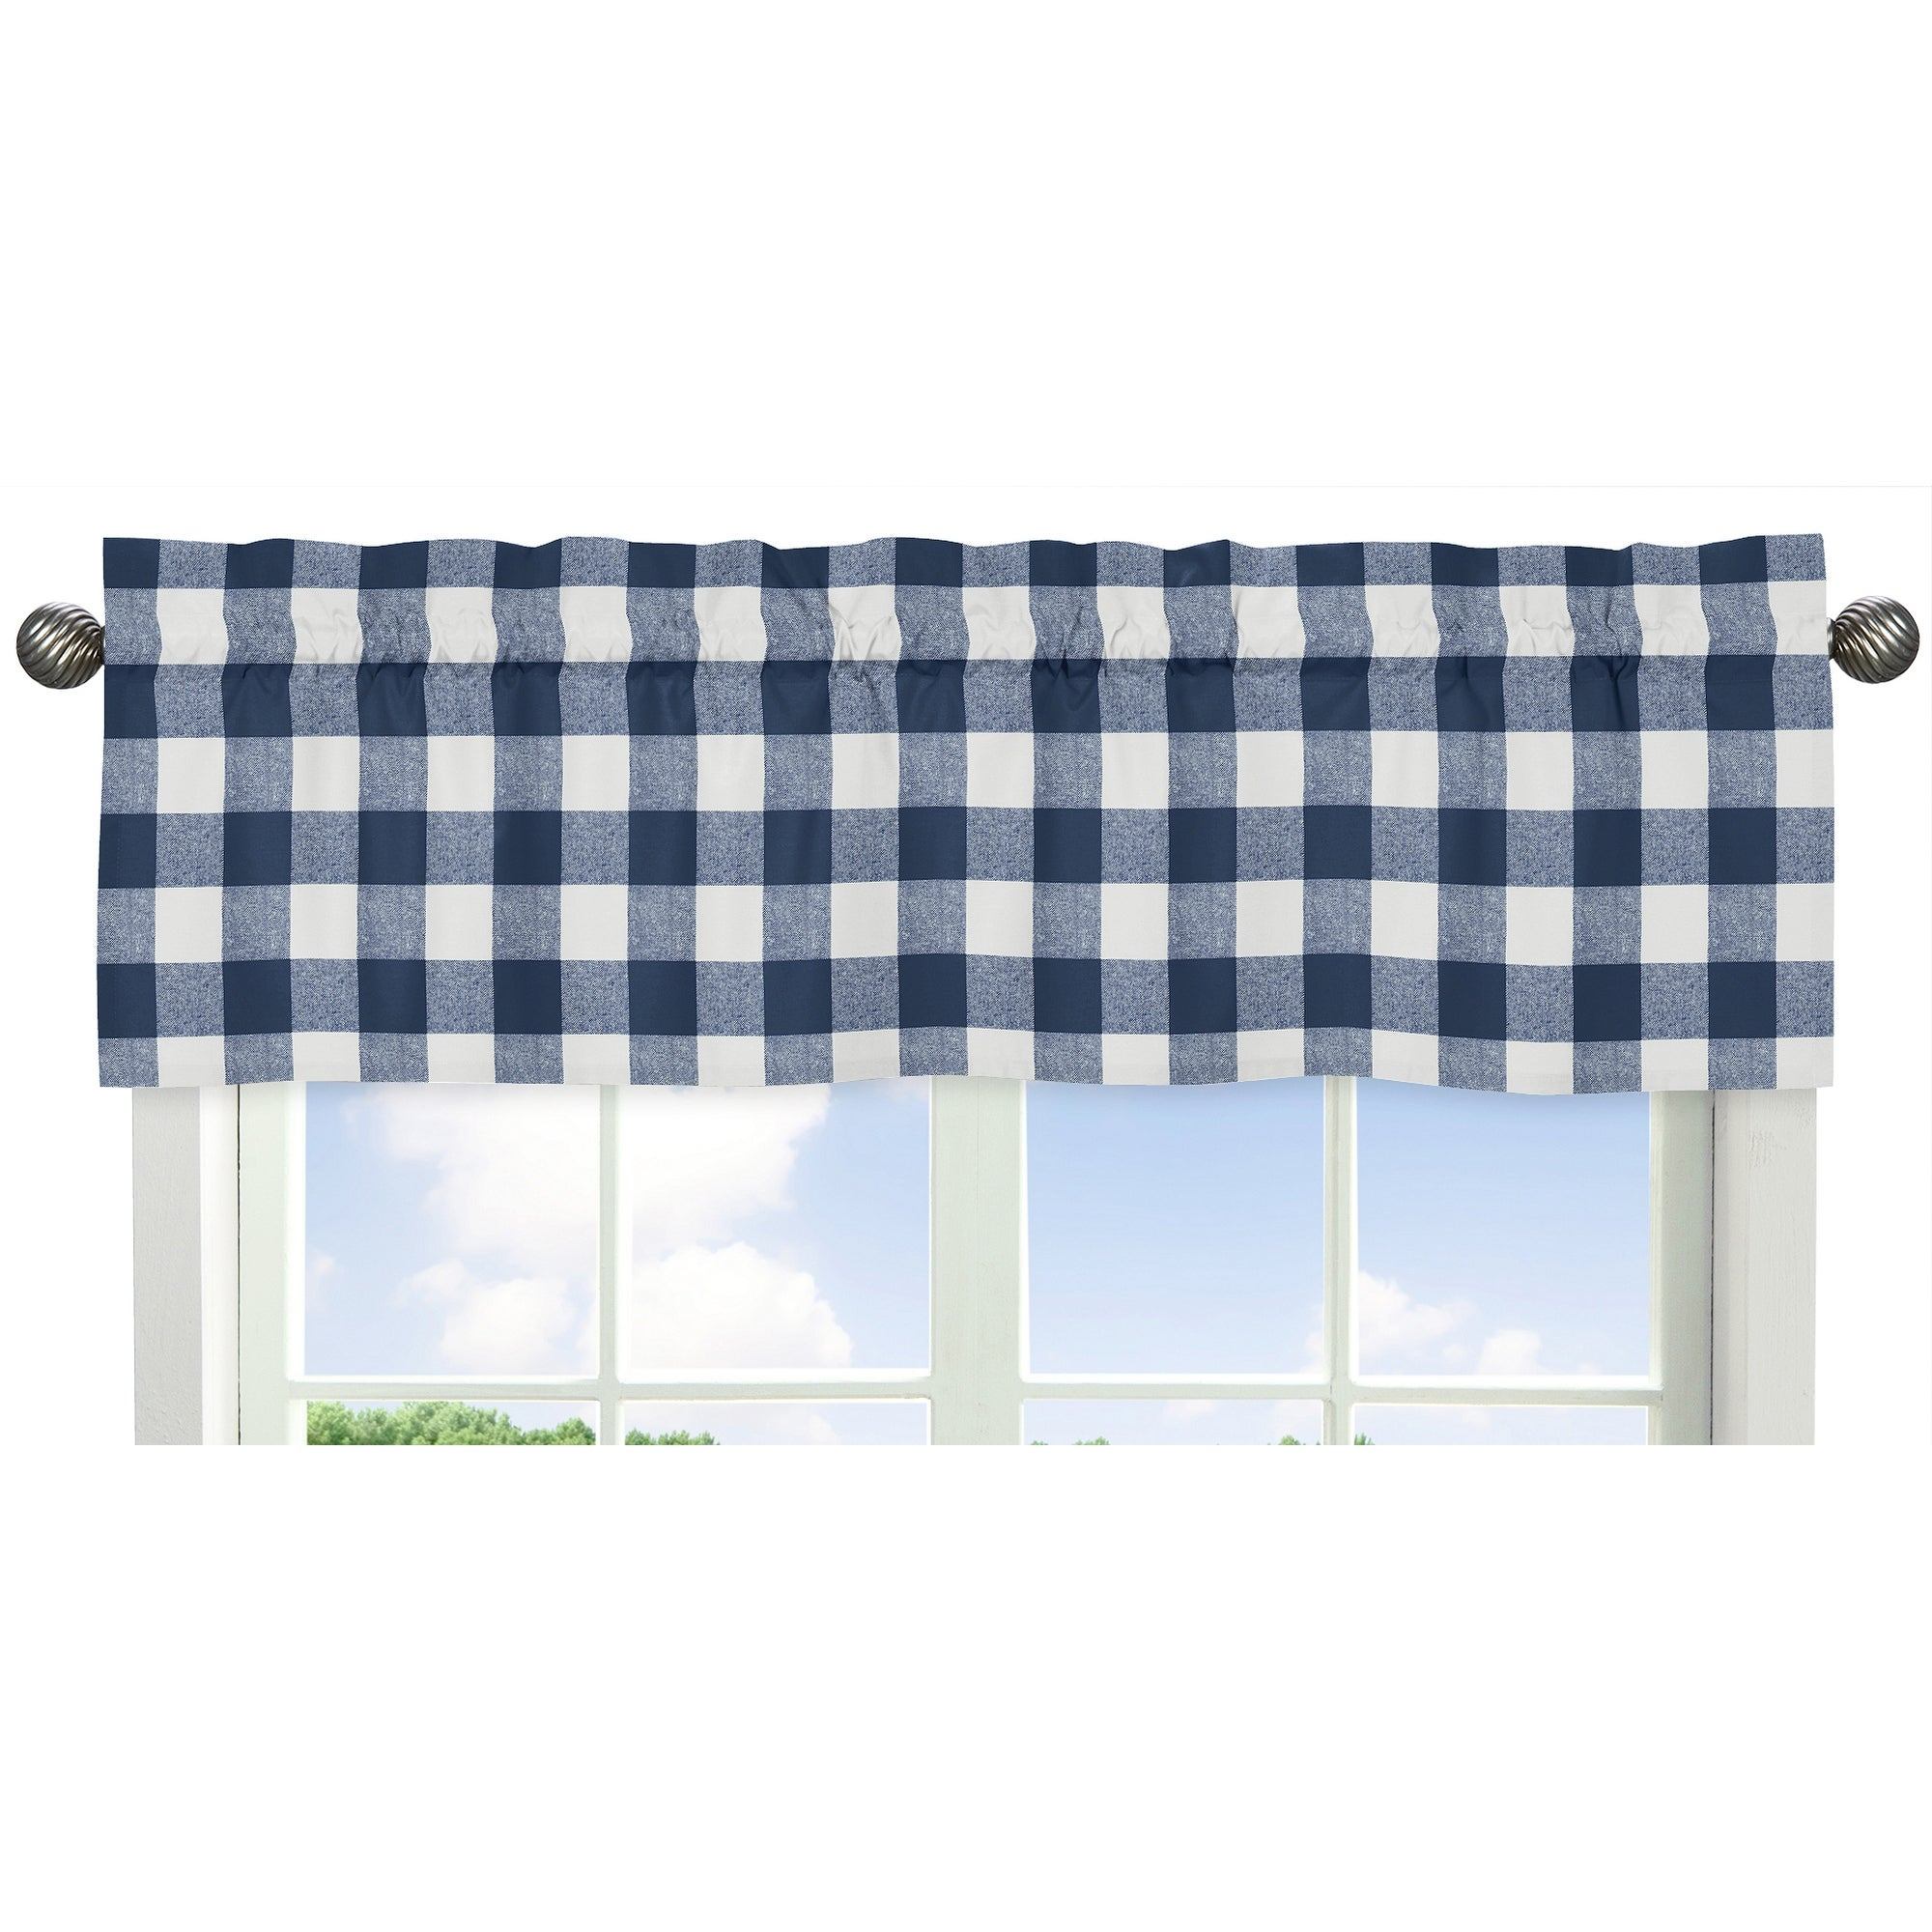 Navy Buffalo Plaid Check Collection Window Curtain Valance Blue And White Woodland Rustic Country Farmhouse Lumberjack Overstock 31459881